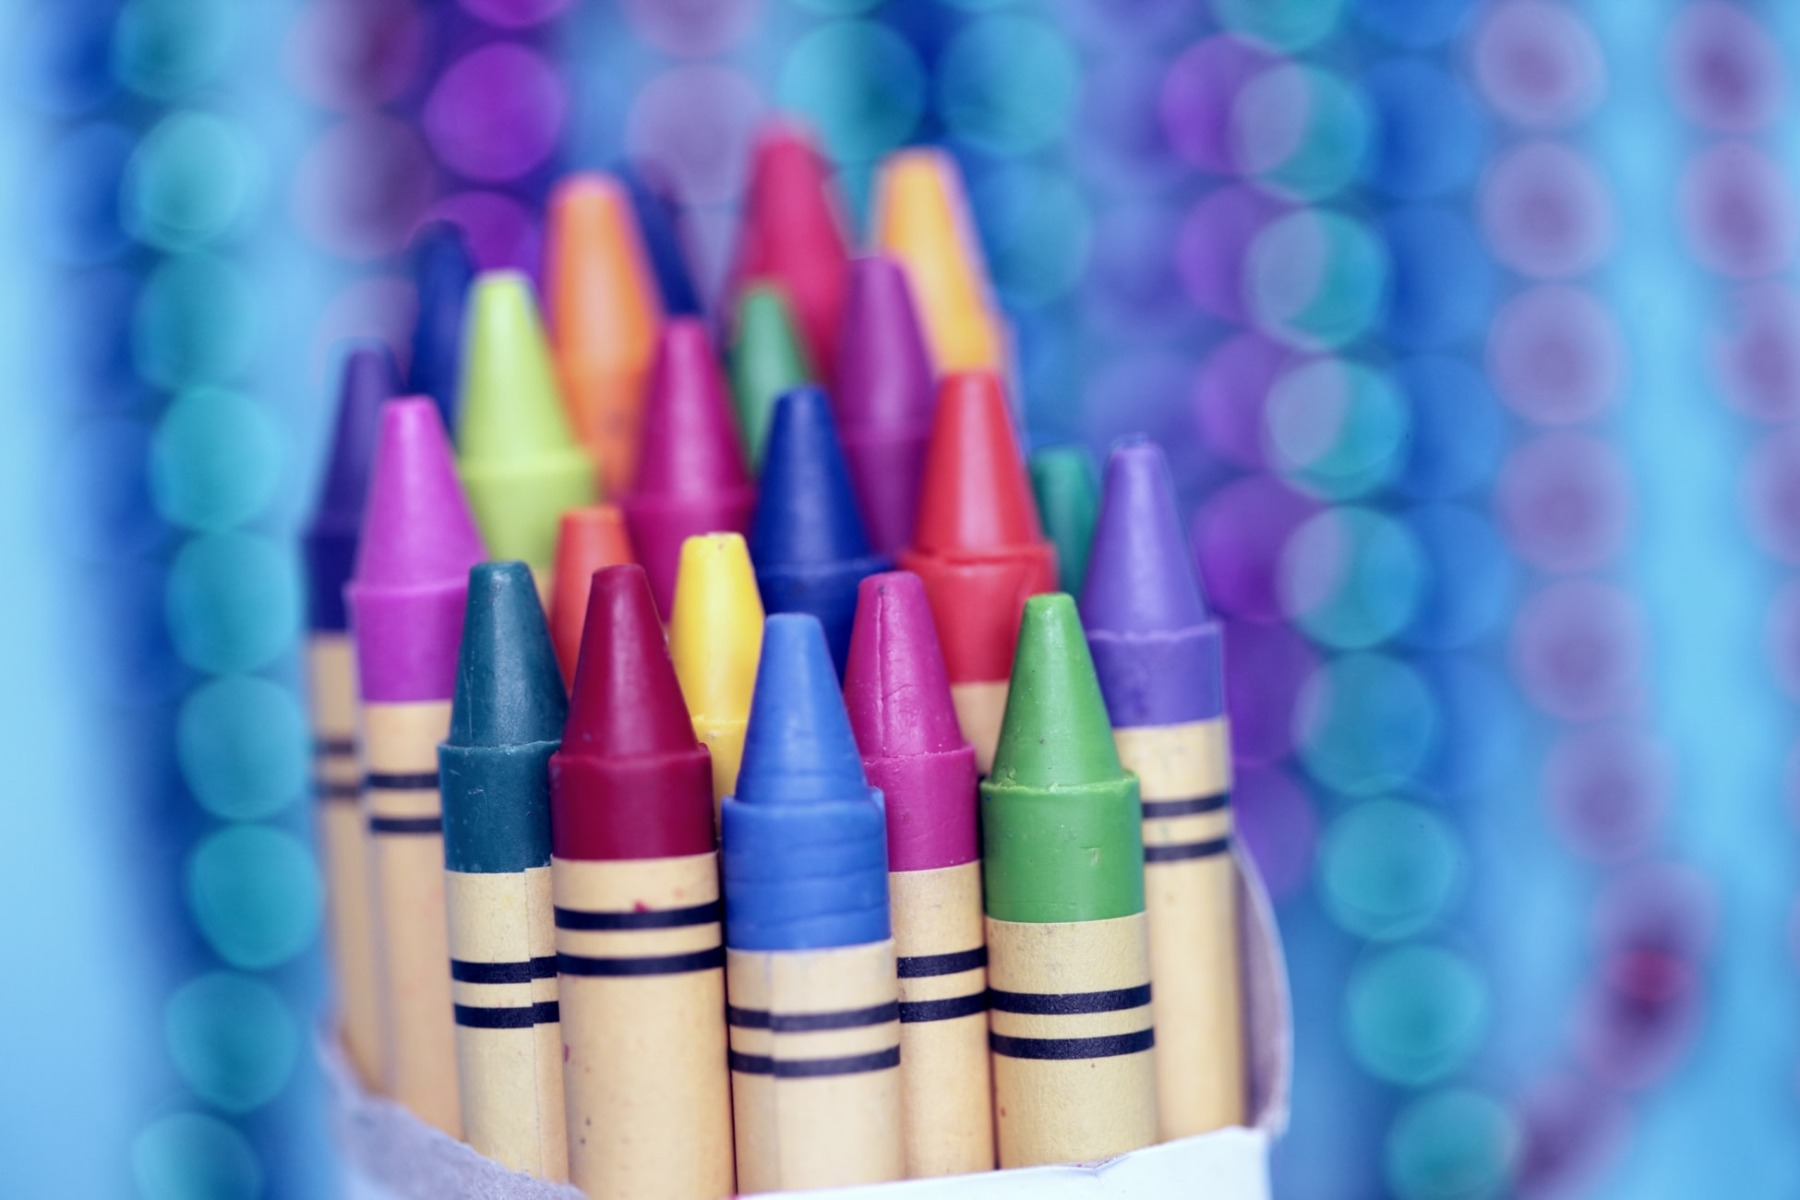 A box full of crayons nfront of a purple background